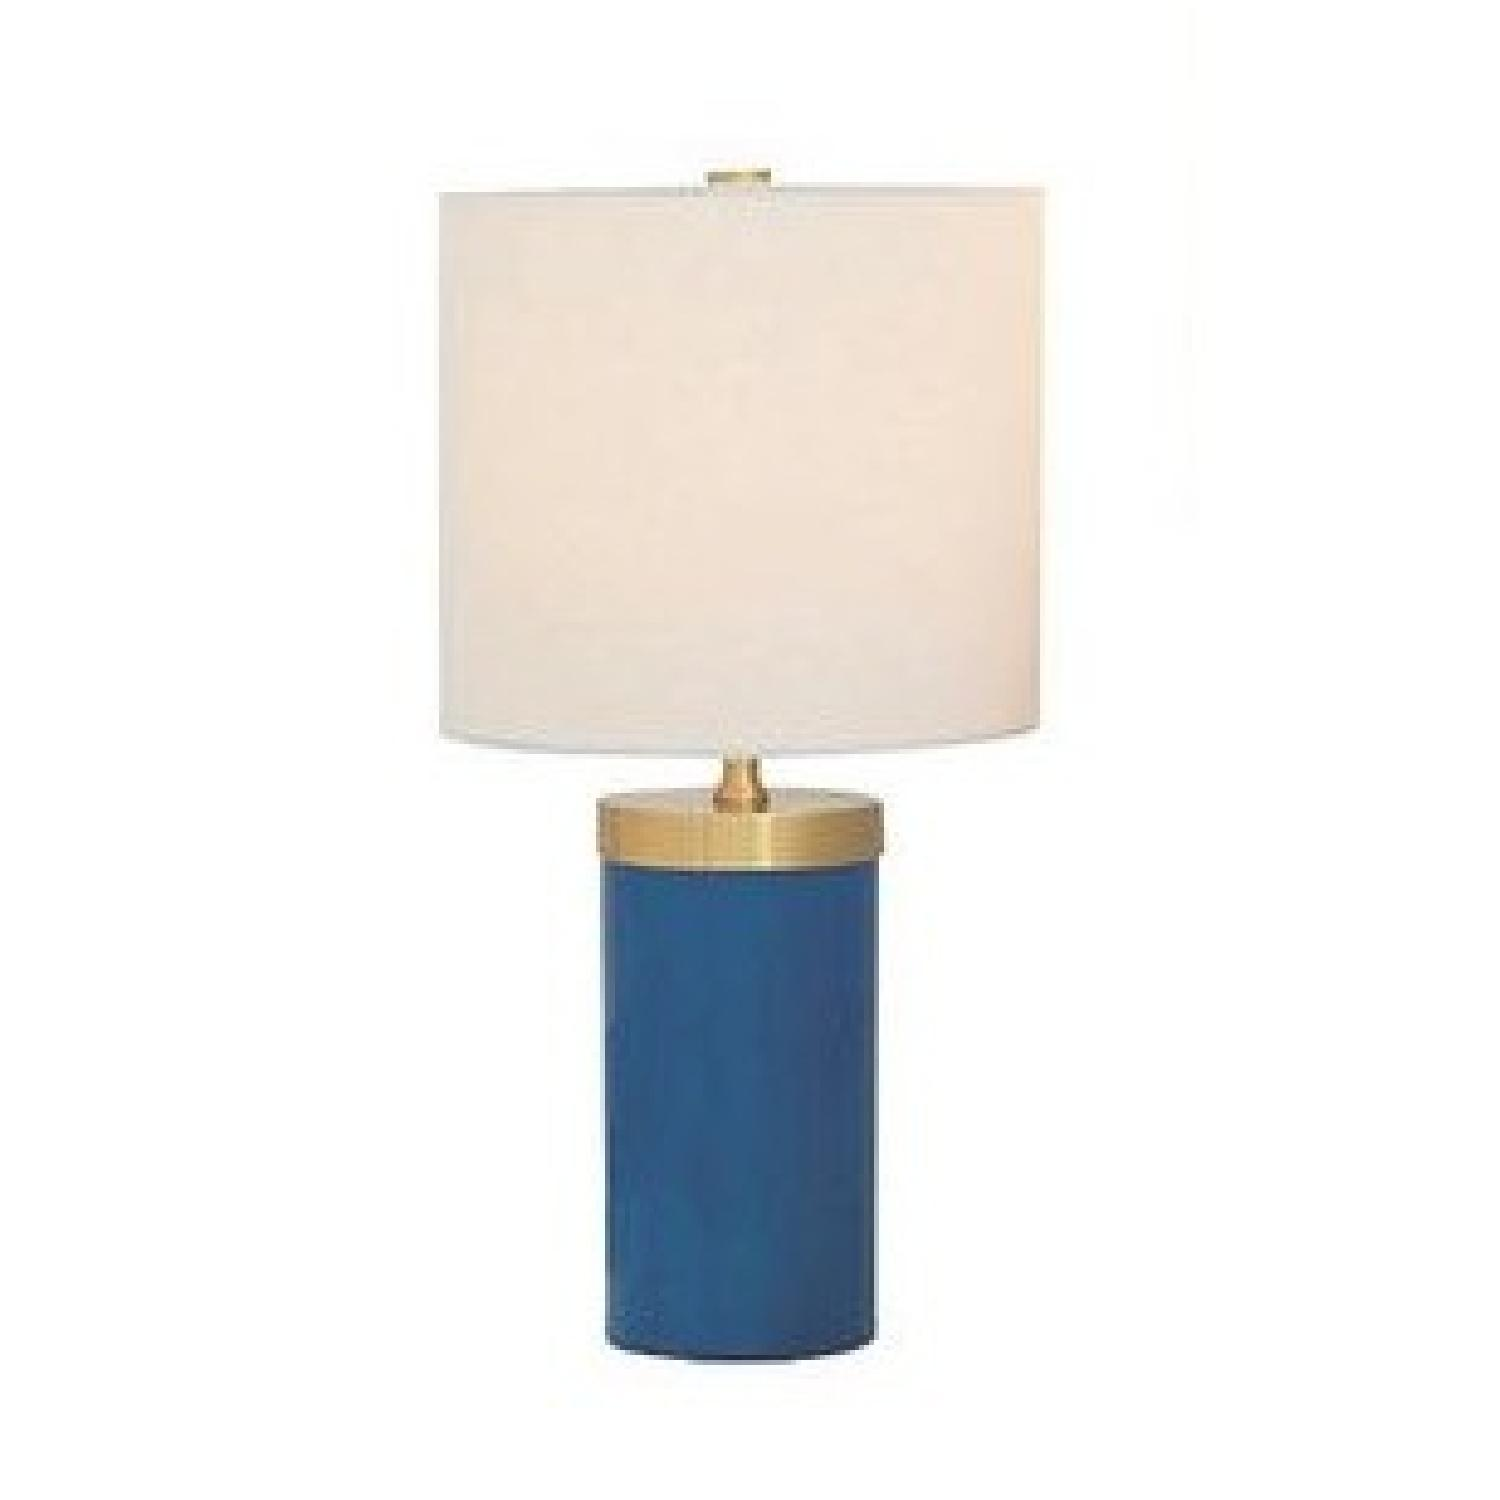 Marty Port 68 S/2 Table Lamps in Turquoise